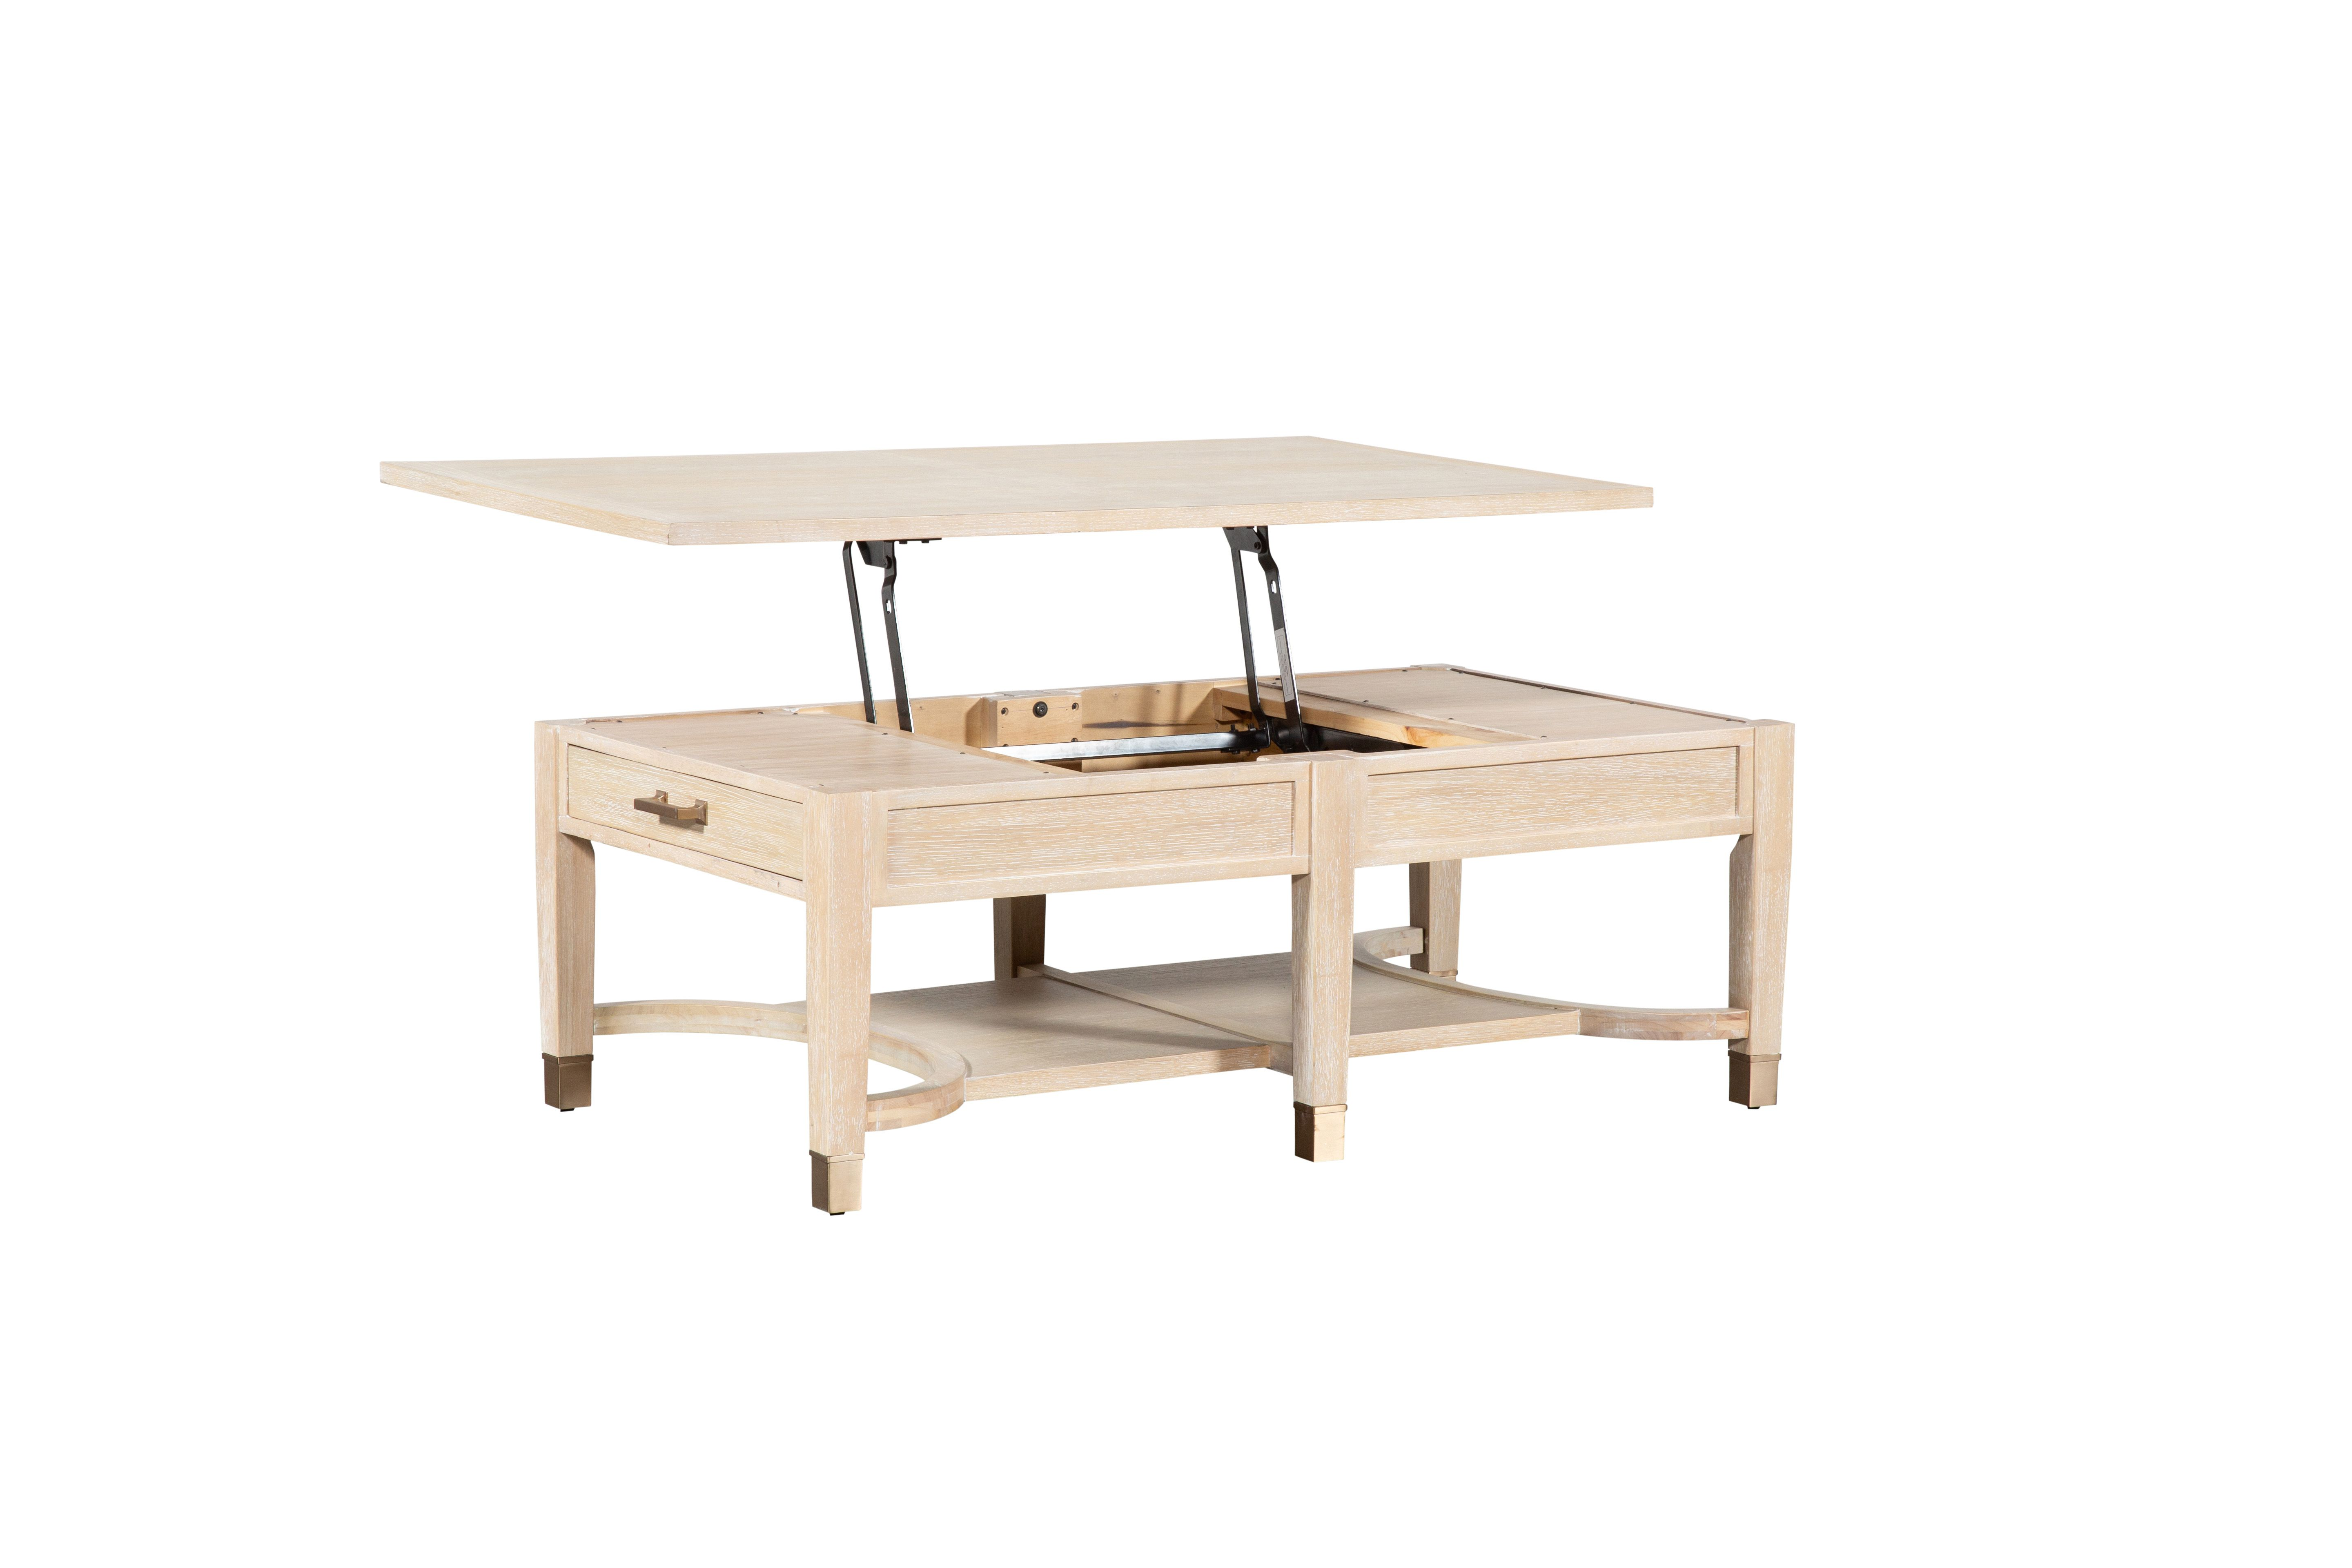 Nate Berkus and Jeremiah Brent for Living Spaces Gramercy Lift-Top Storage Coffee Table